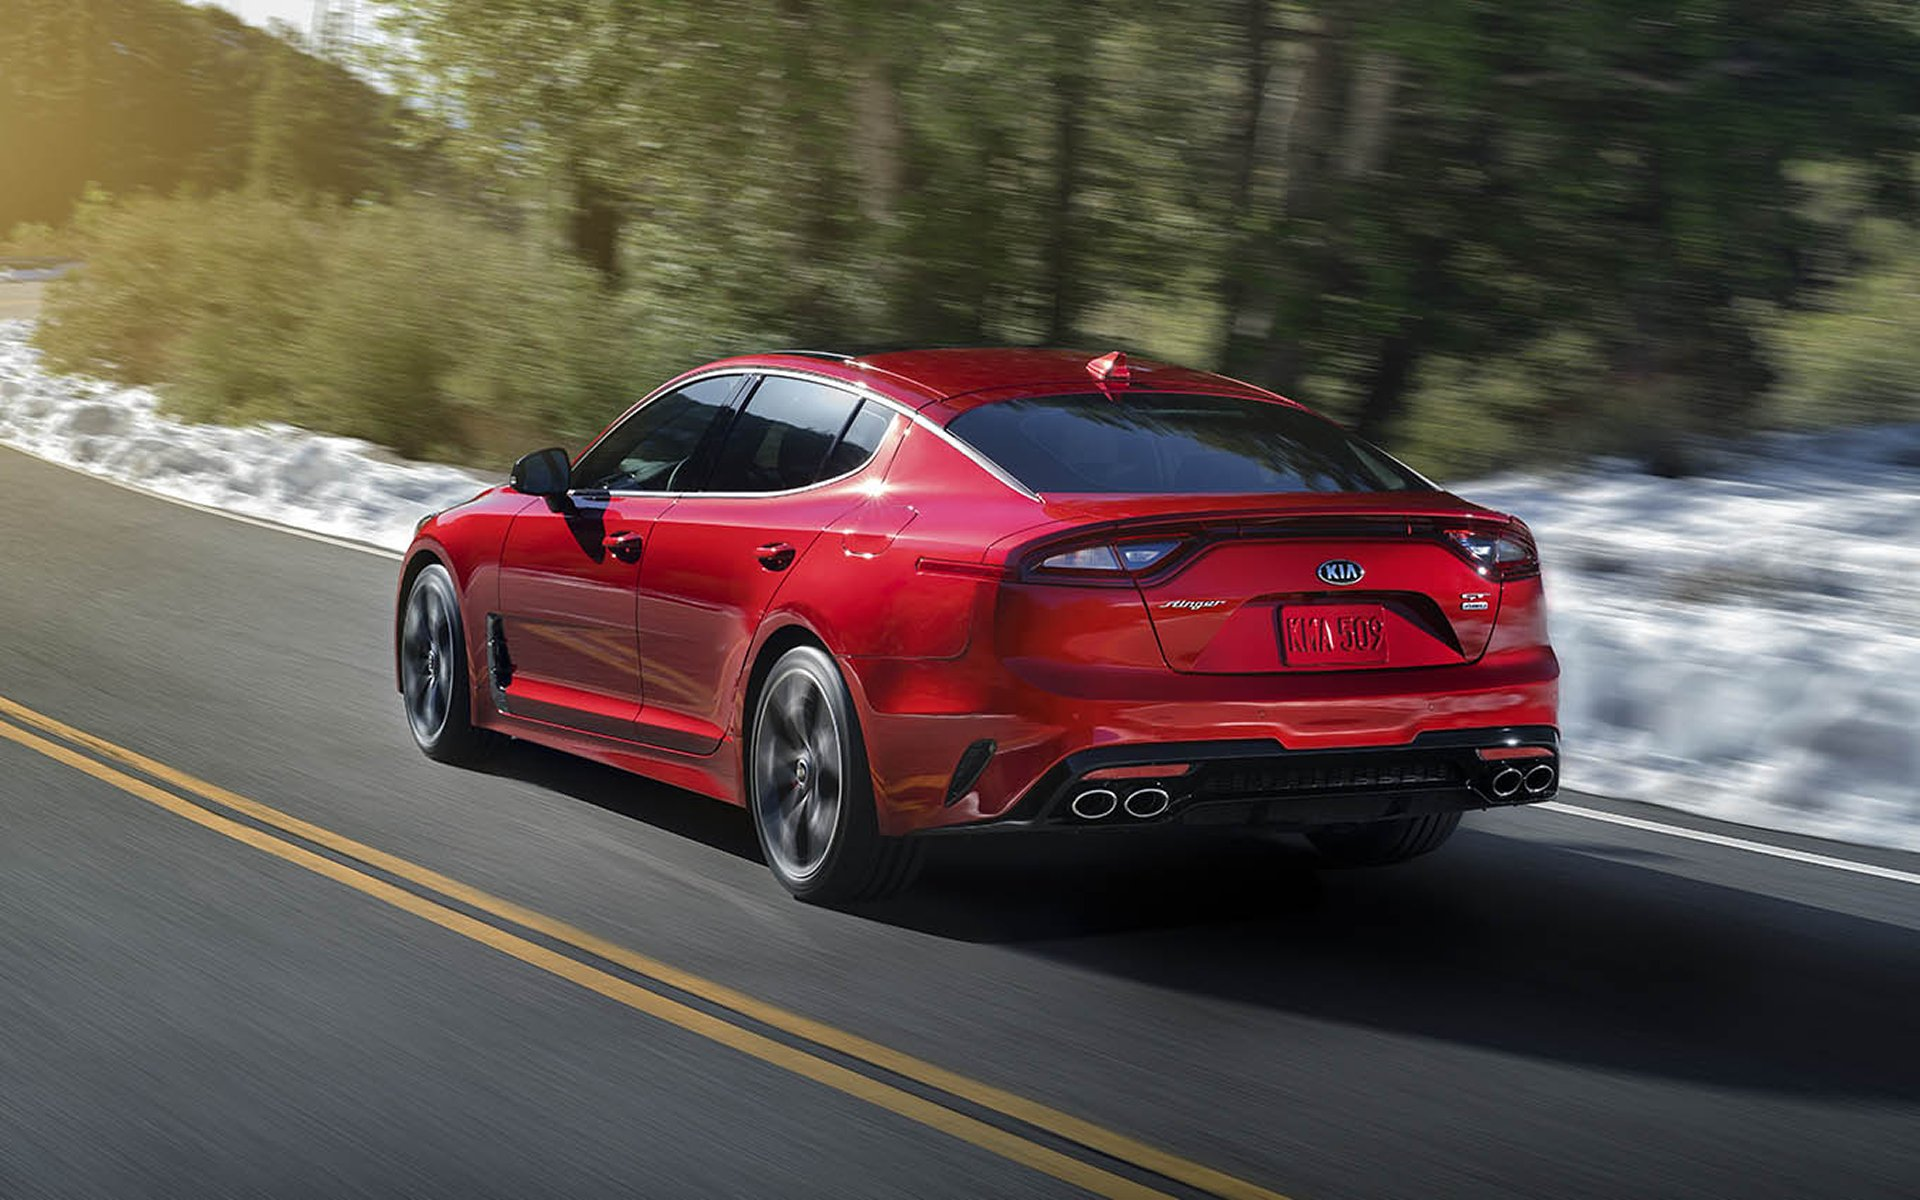 of about tech we a show fun s that practical sedan production see inside has it care in the kia some admit to auto car sports is oomph but cars sizzles stinger detroit sea have